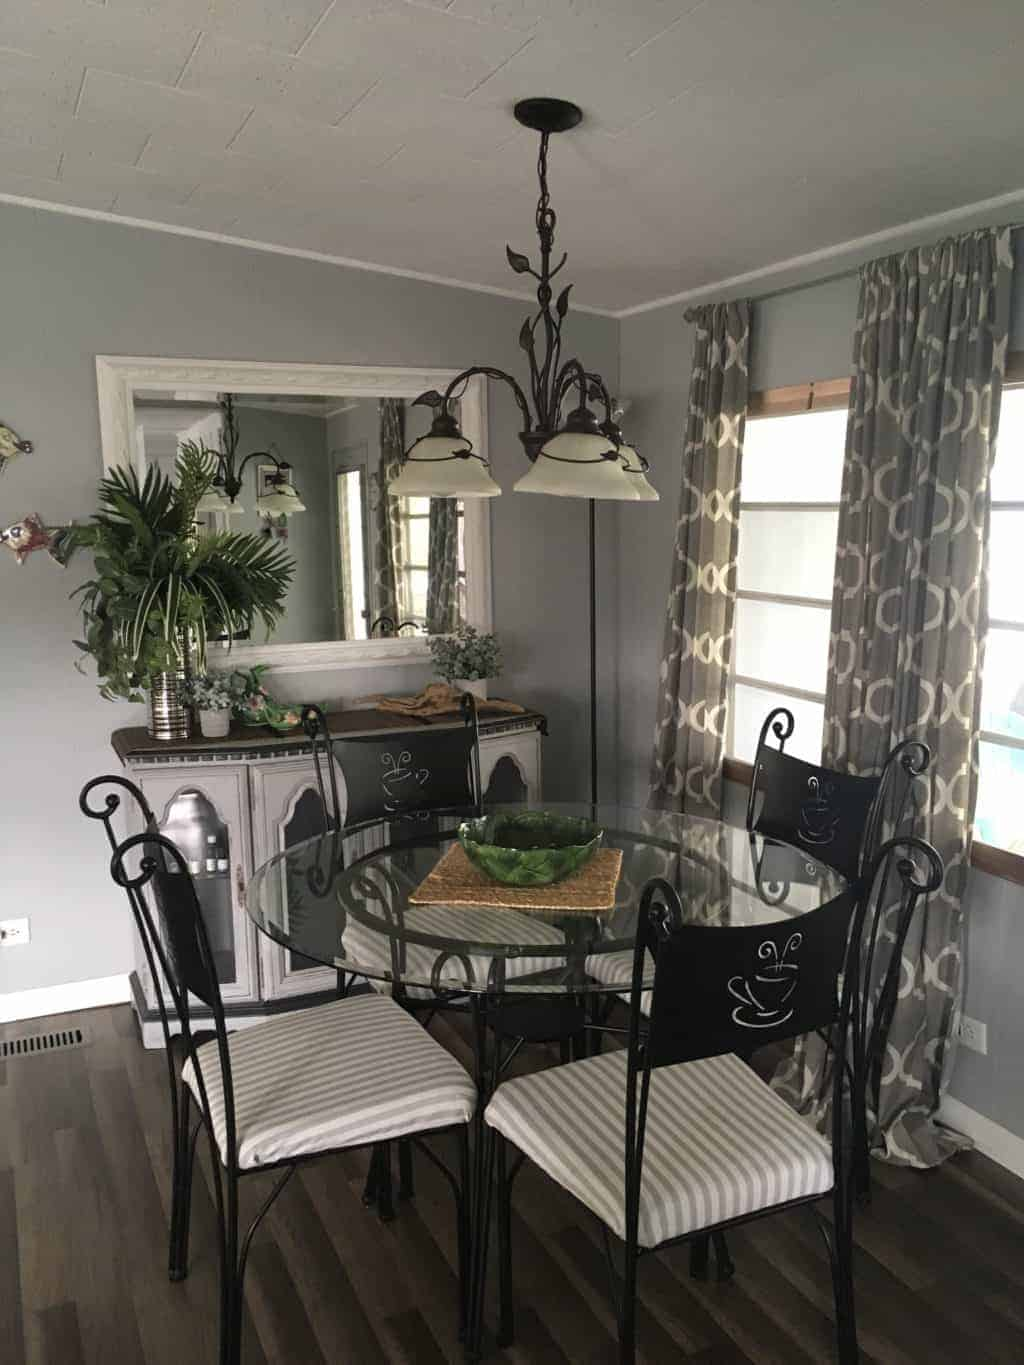 1964 chateau low chandelier over dining room table 1